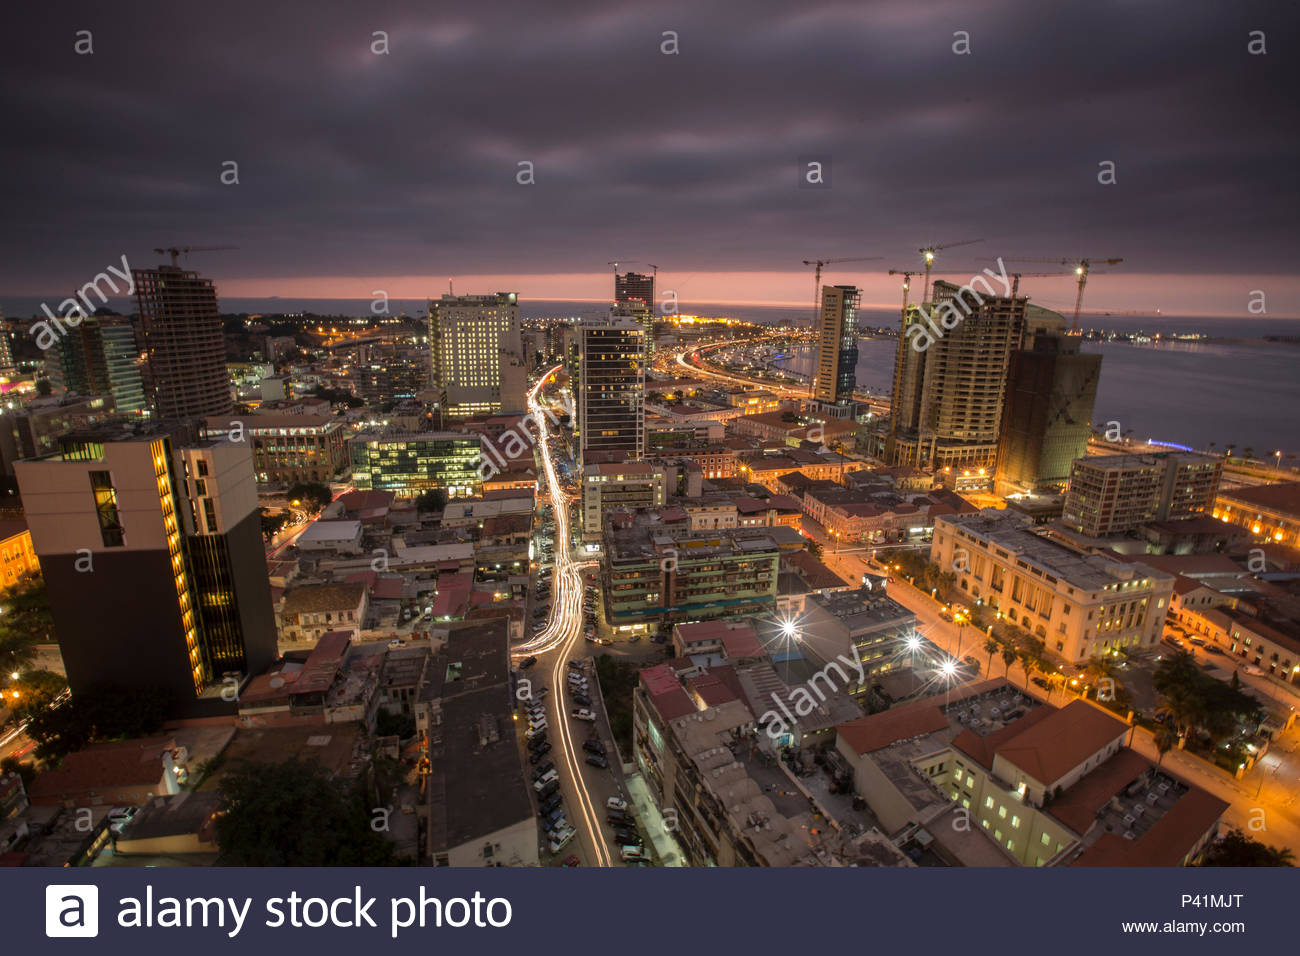 City lights and new construction in Luanda. - Stock Image